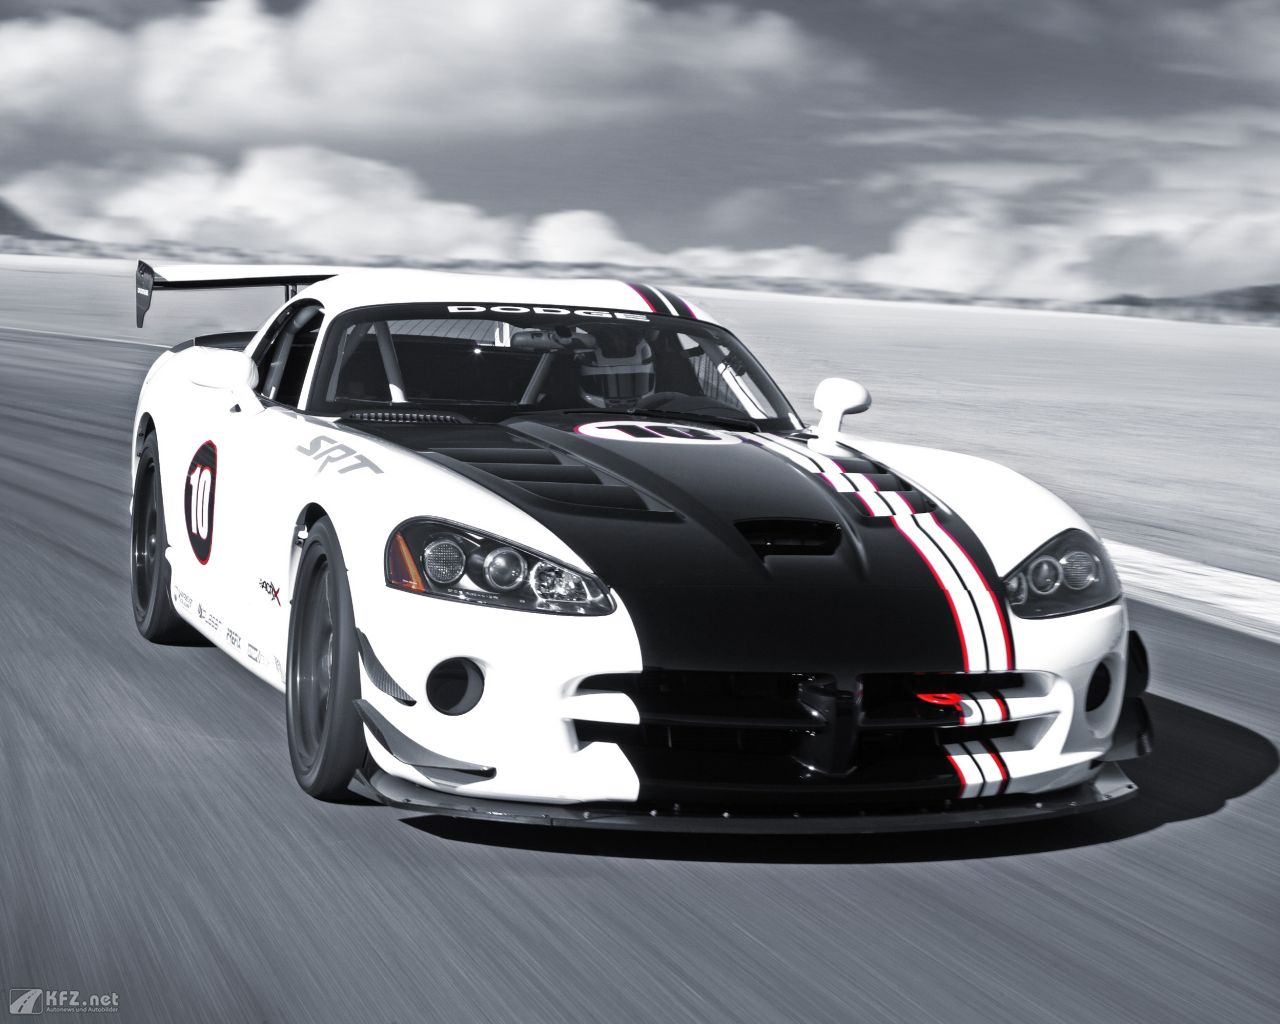 chrysler-dodge-viper-1280x1024-12